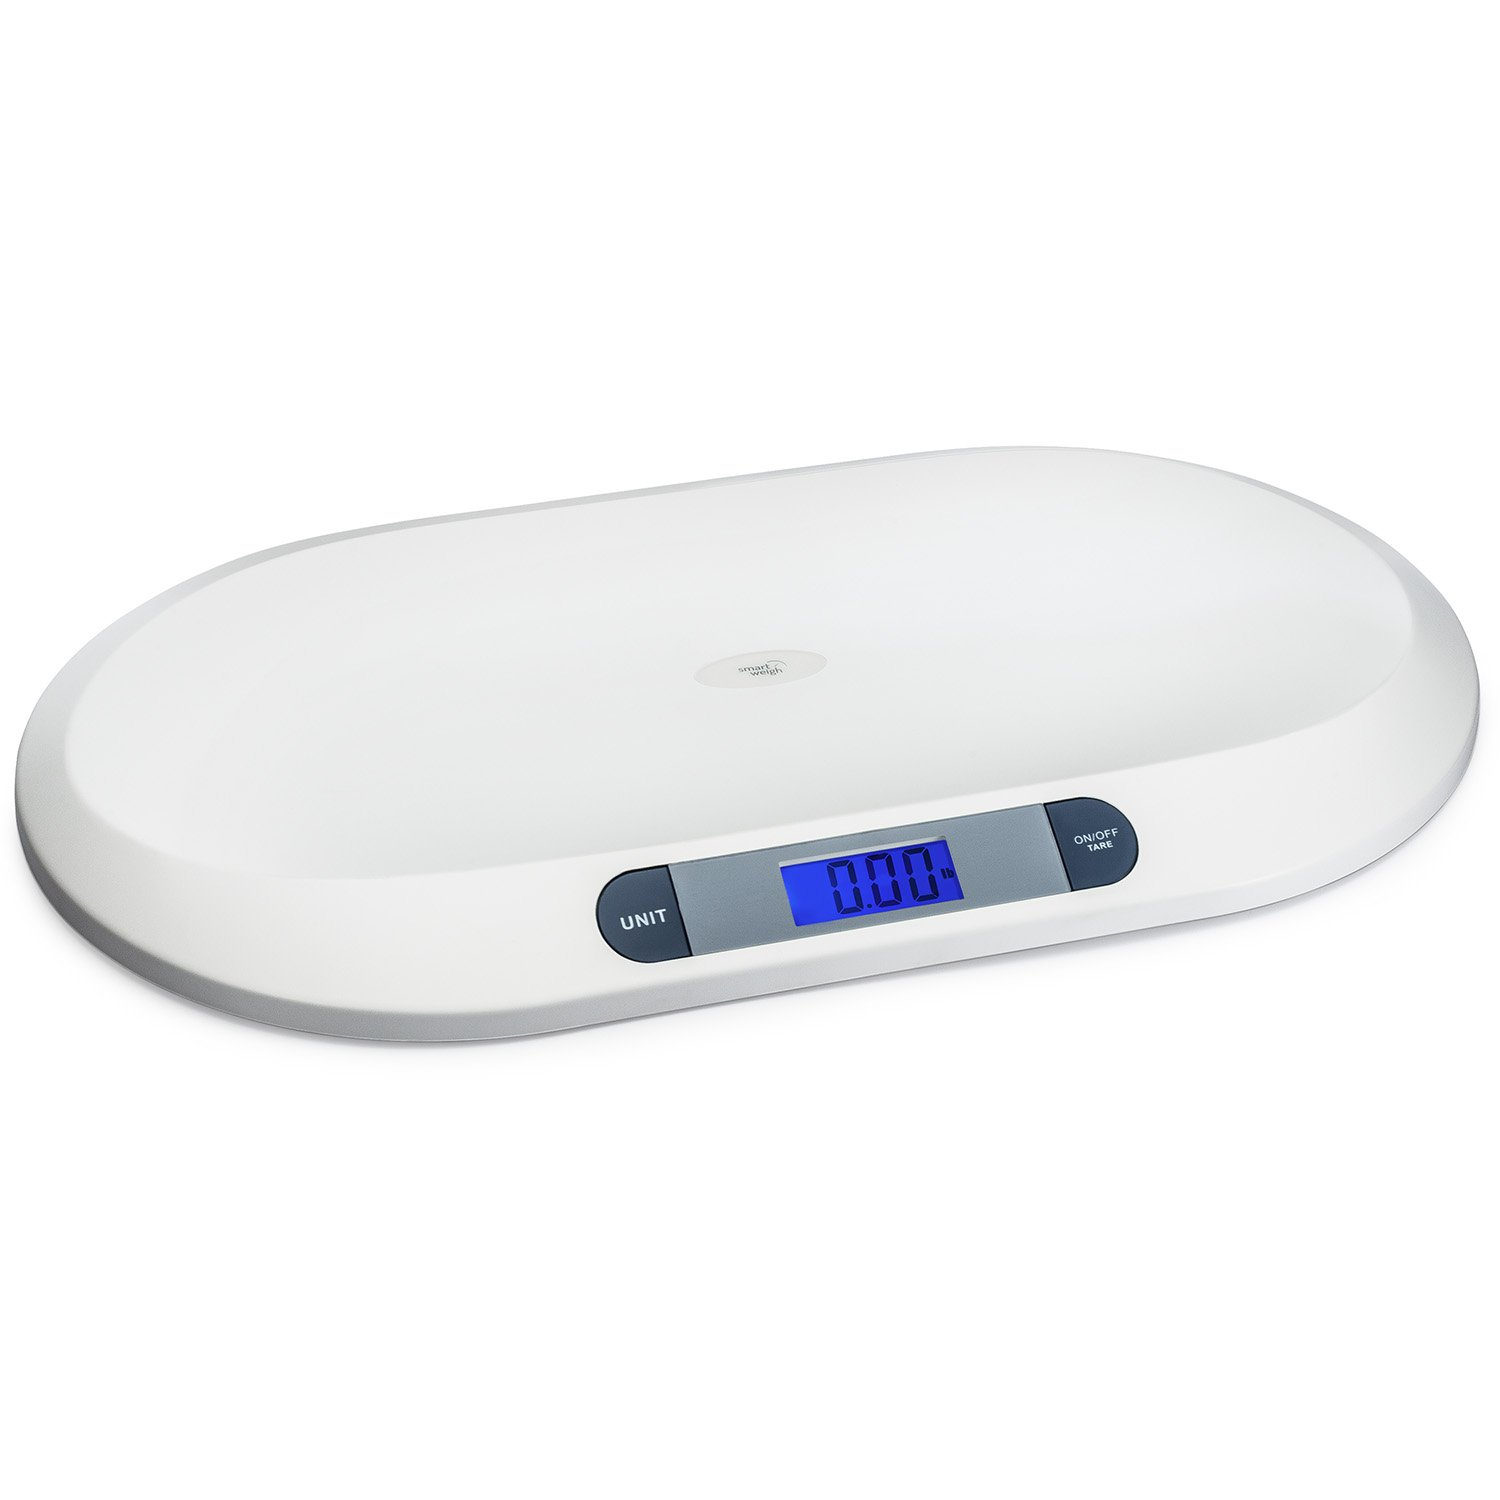 Smart Weigh Comfort Baby Scale with 3 Weighing Modes, 44 Pound (lbs) Capacity, Accurate Digital Scale for Infants, Toddlers, and Babies